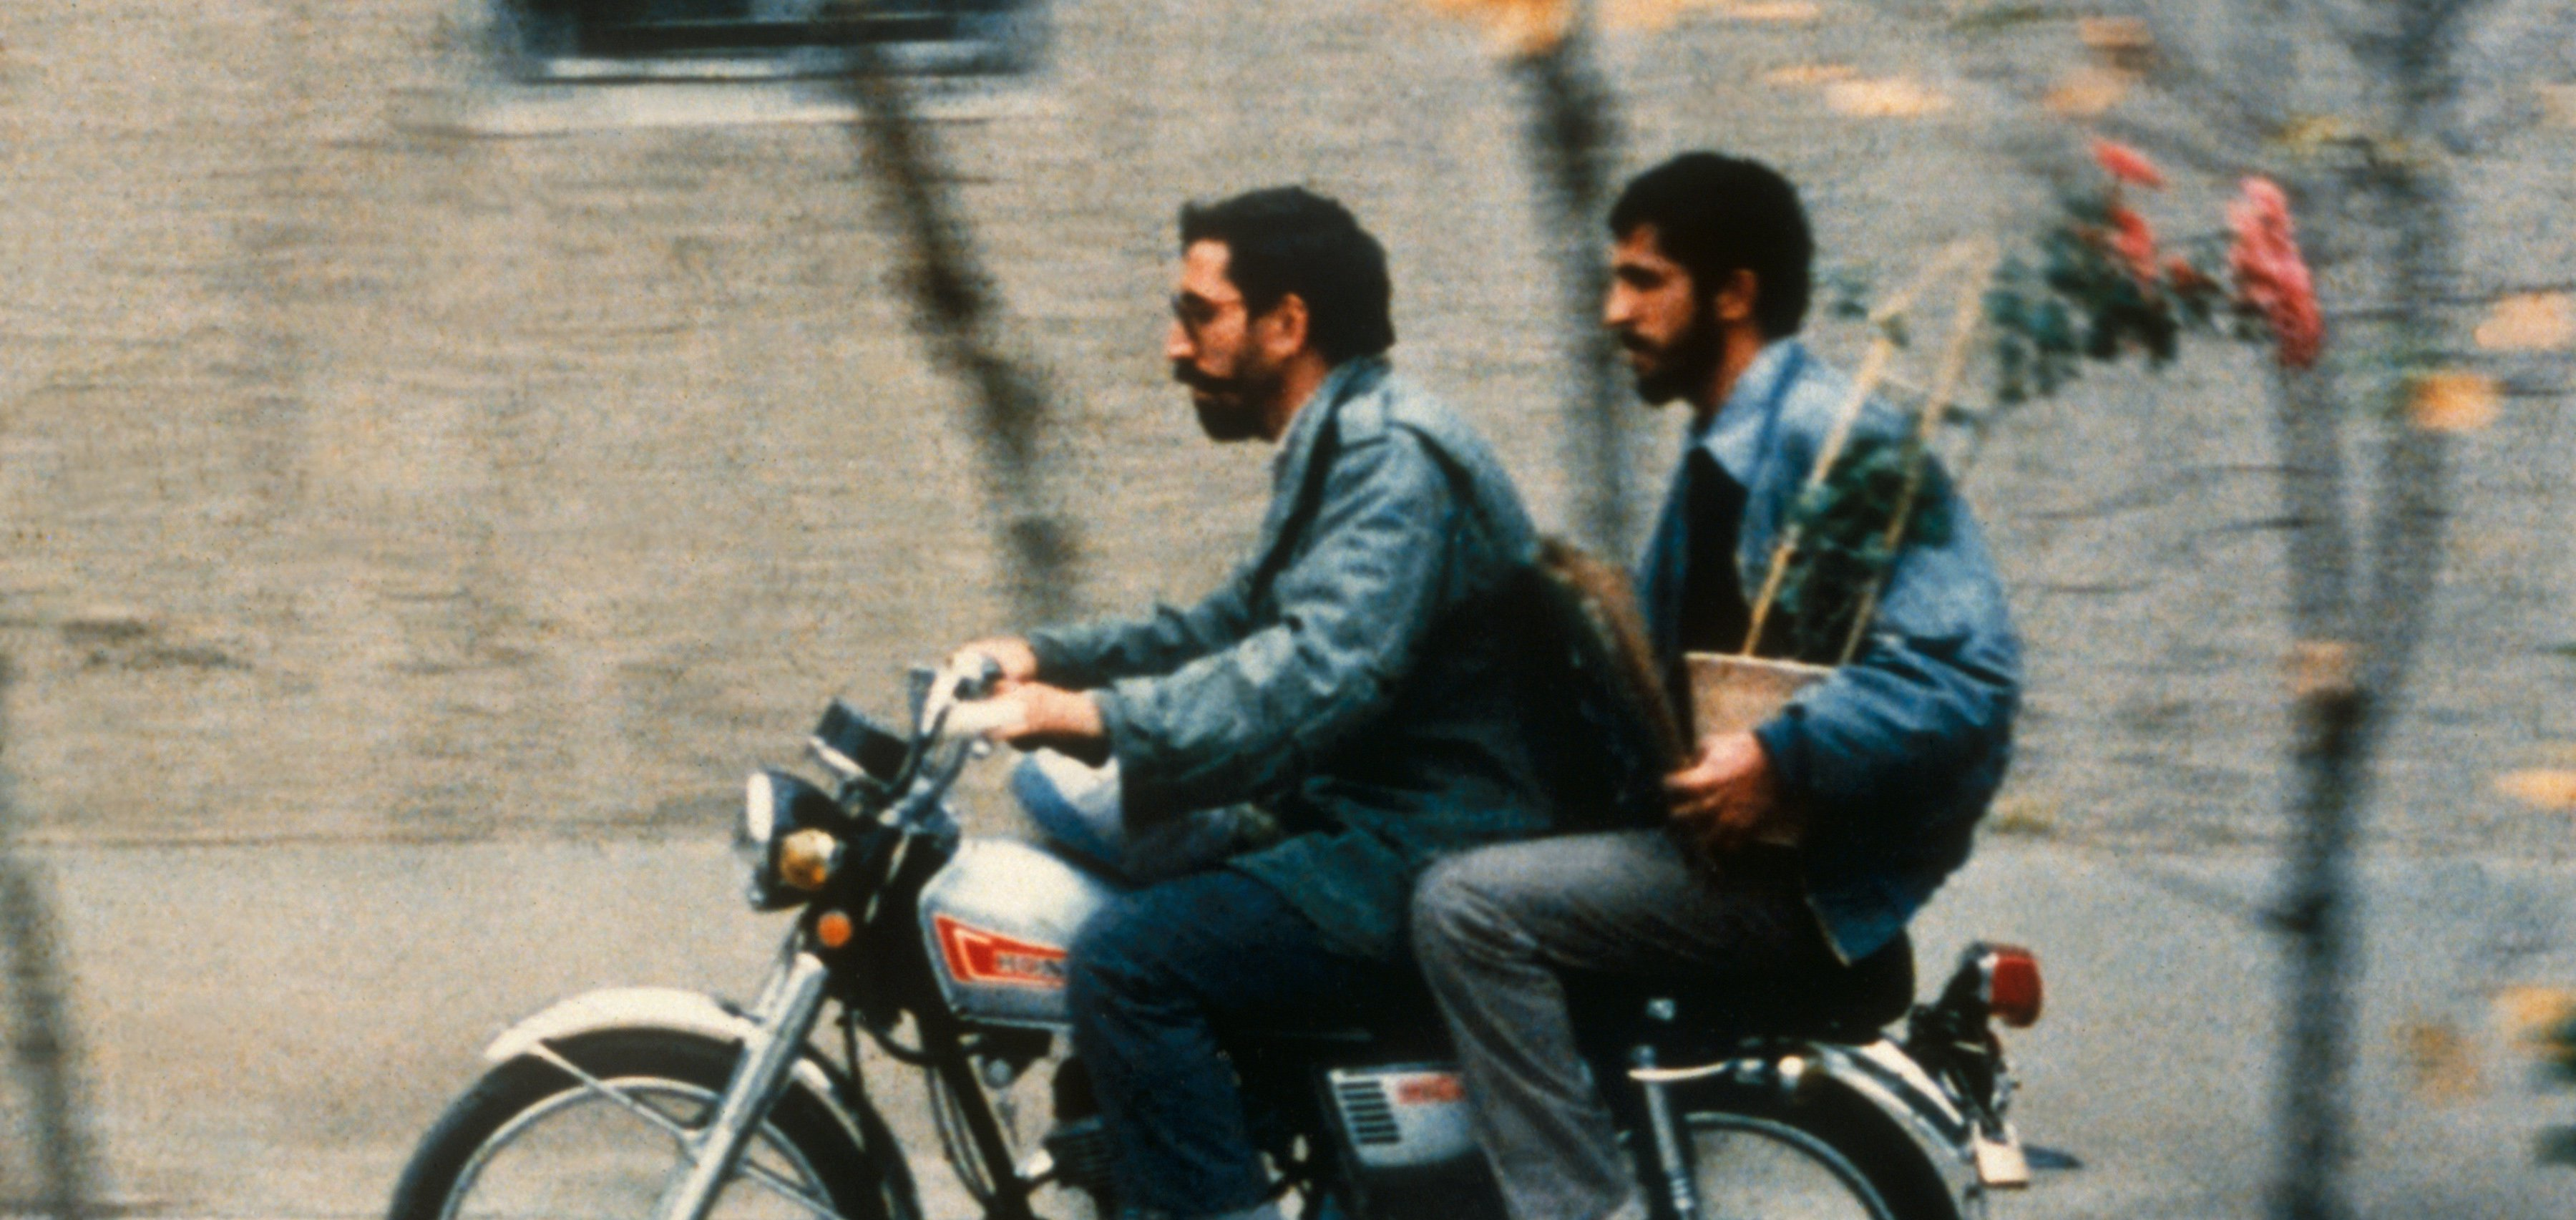 Two men on a motorbike, the one on the back holding a flowerpot in a still from Close-up (1990)